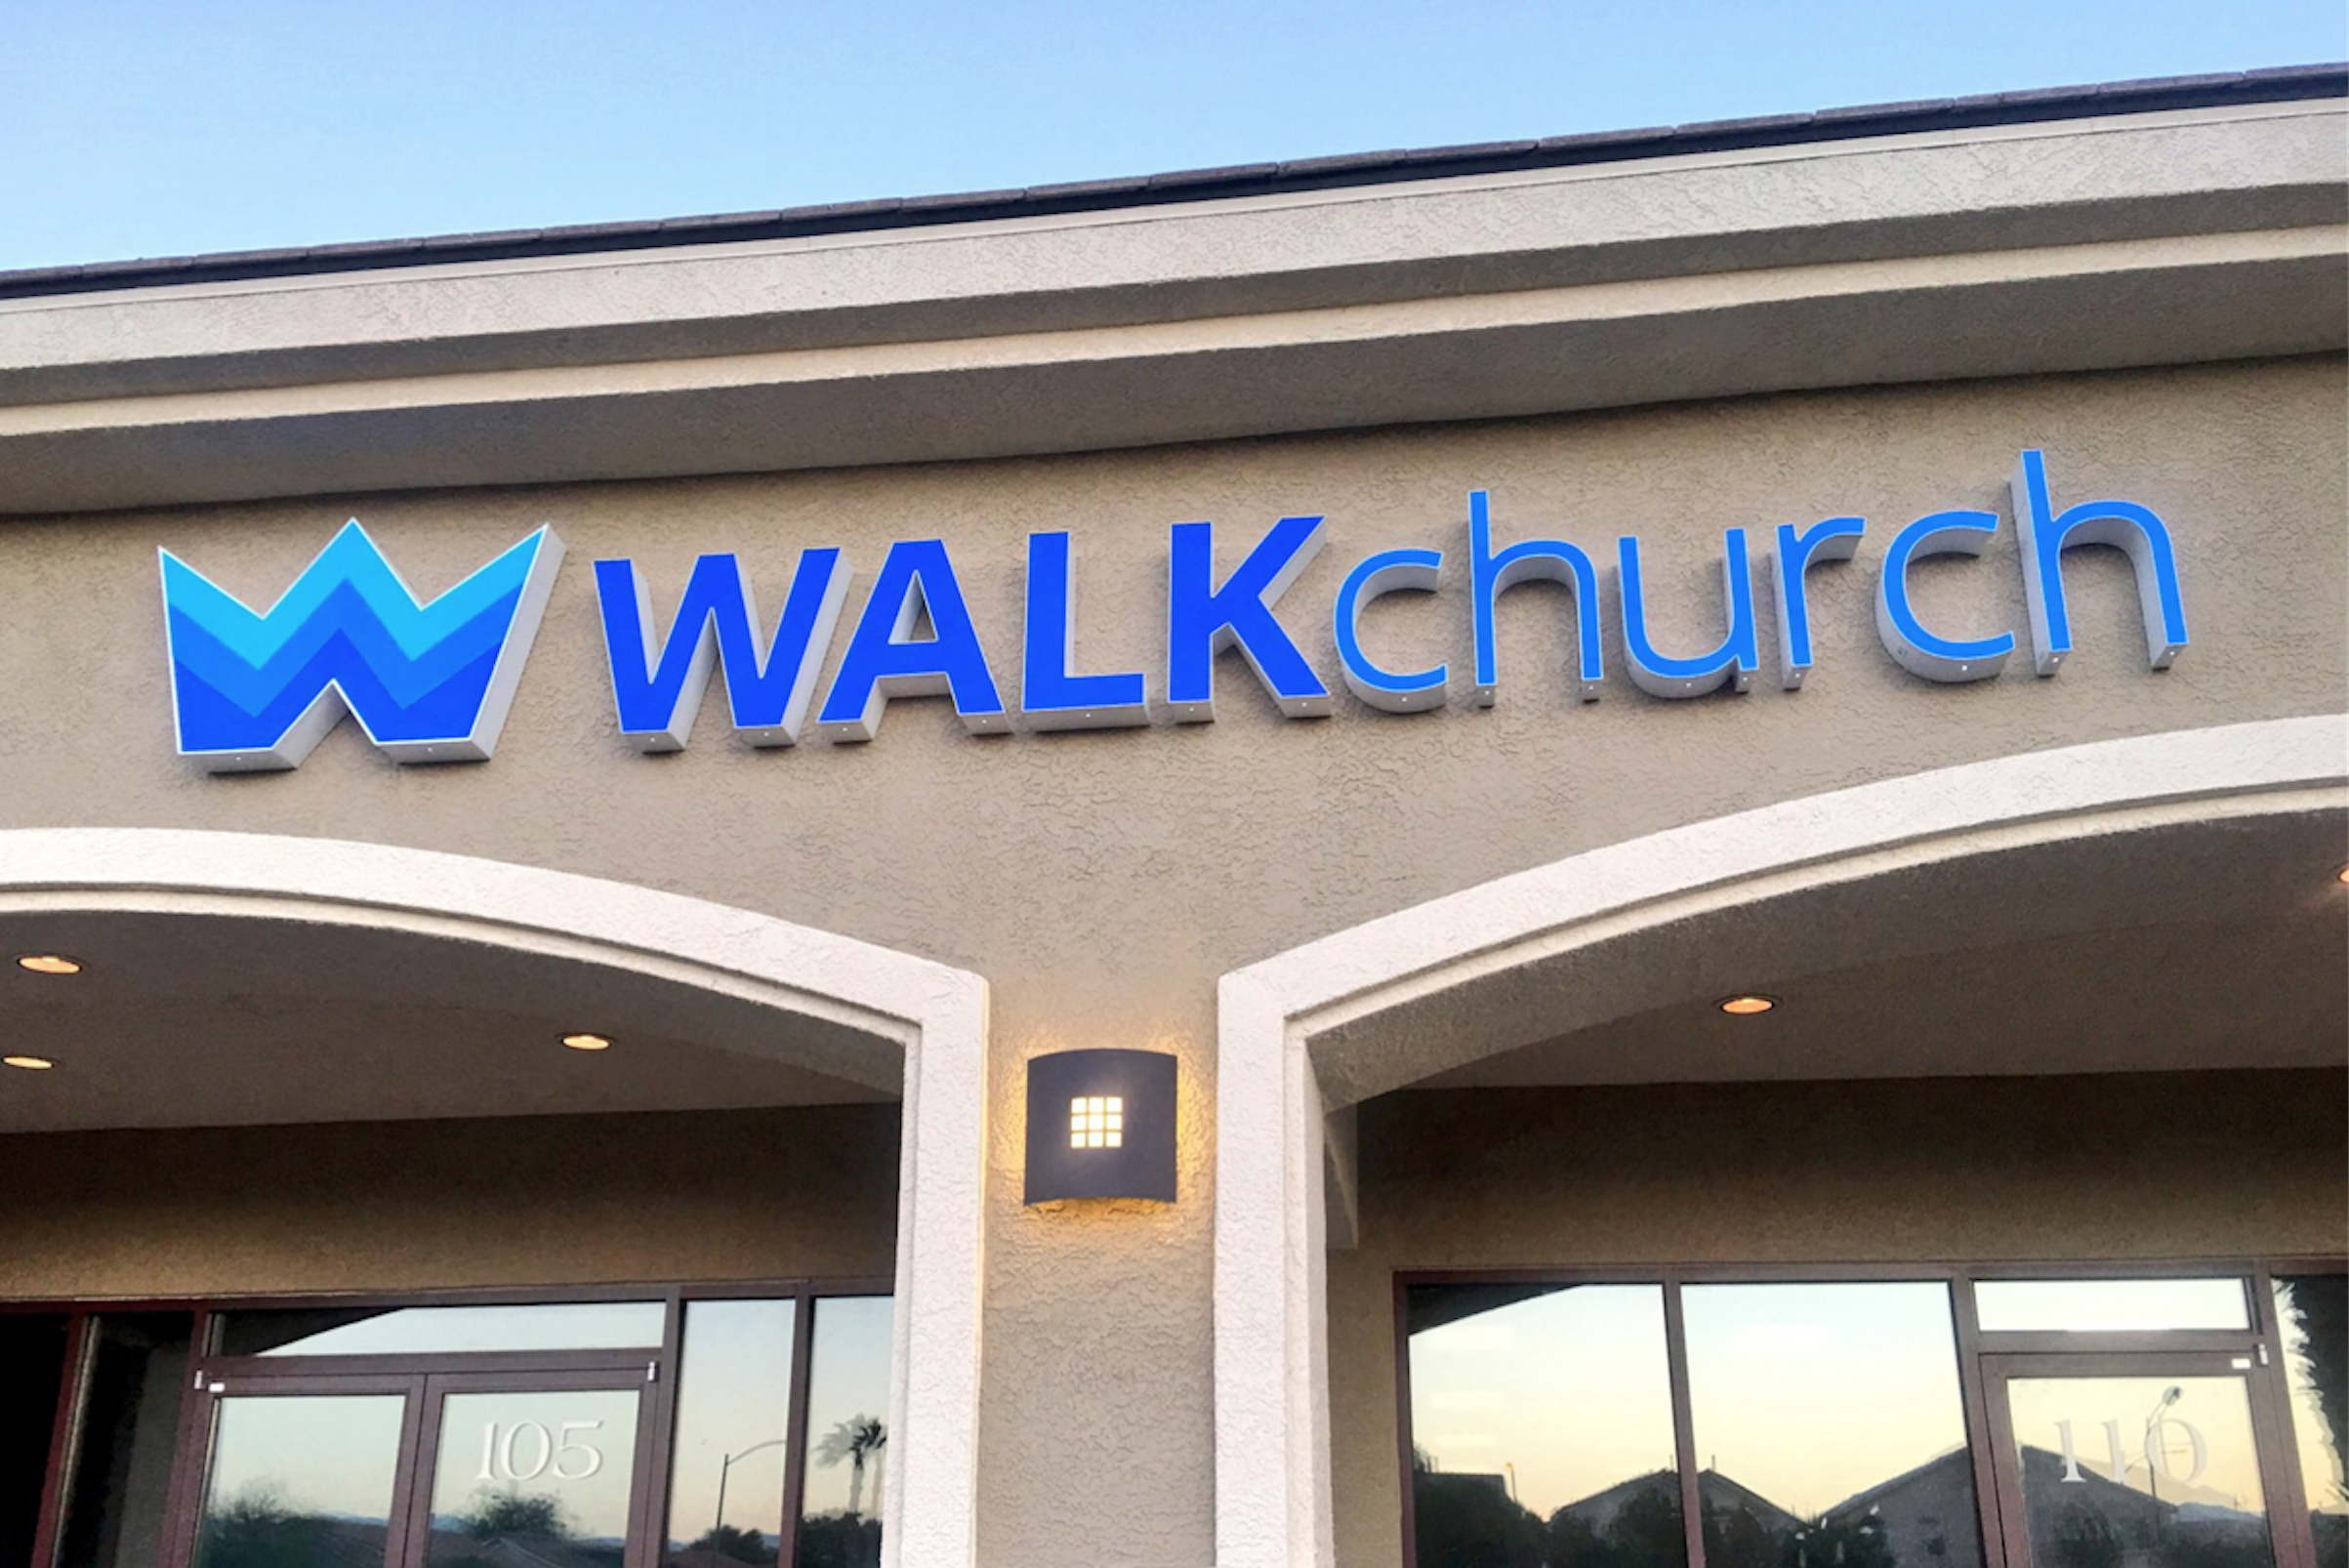 WALK Church Ministry Office